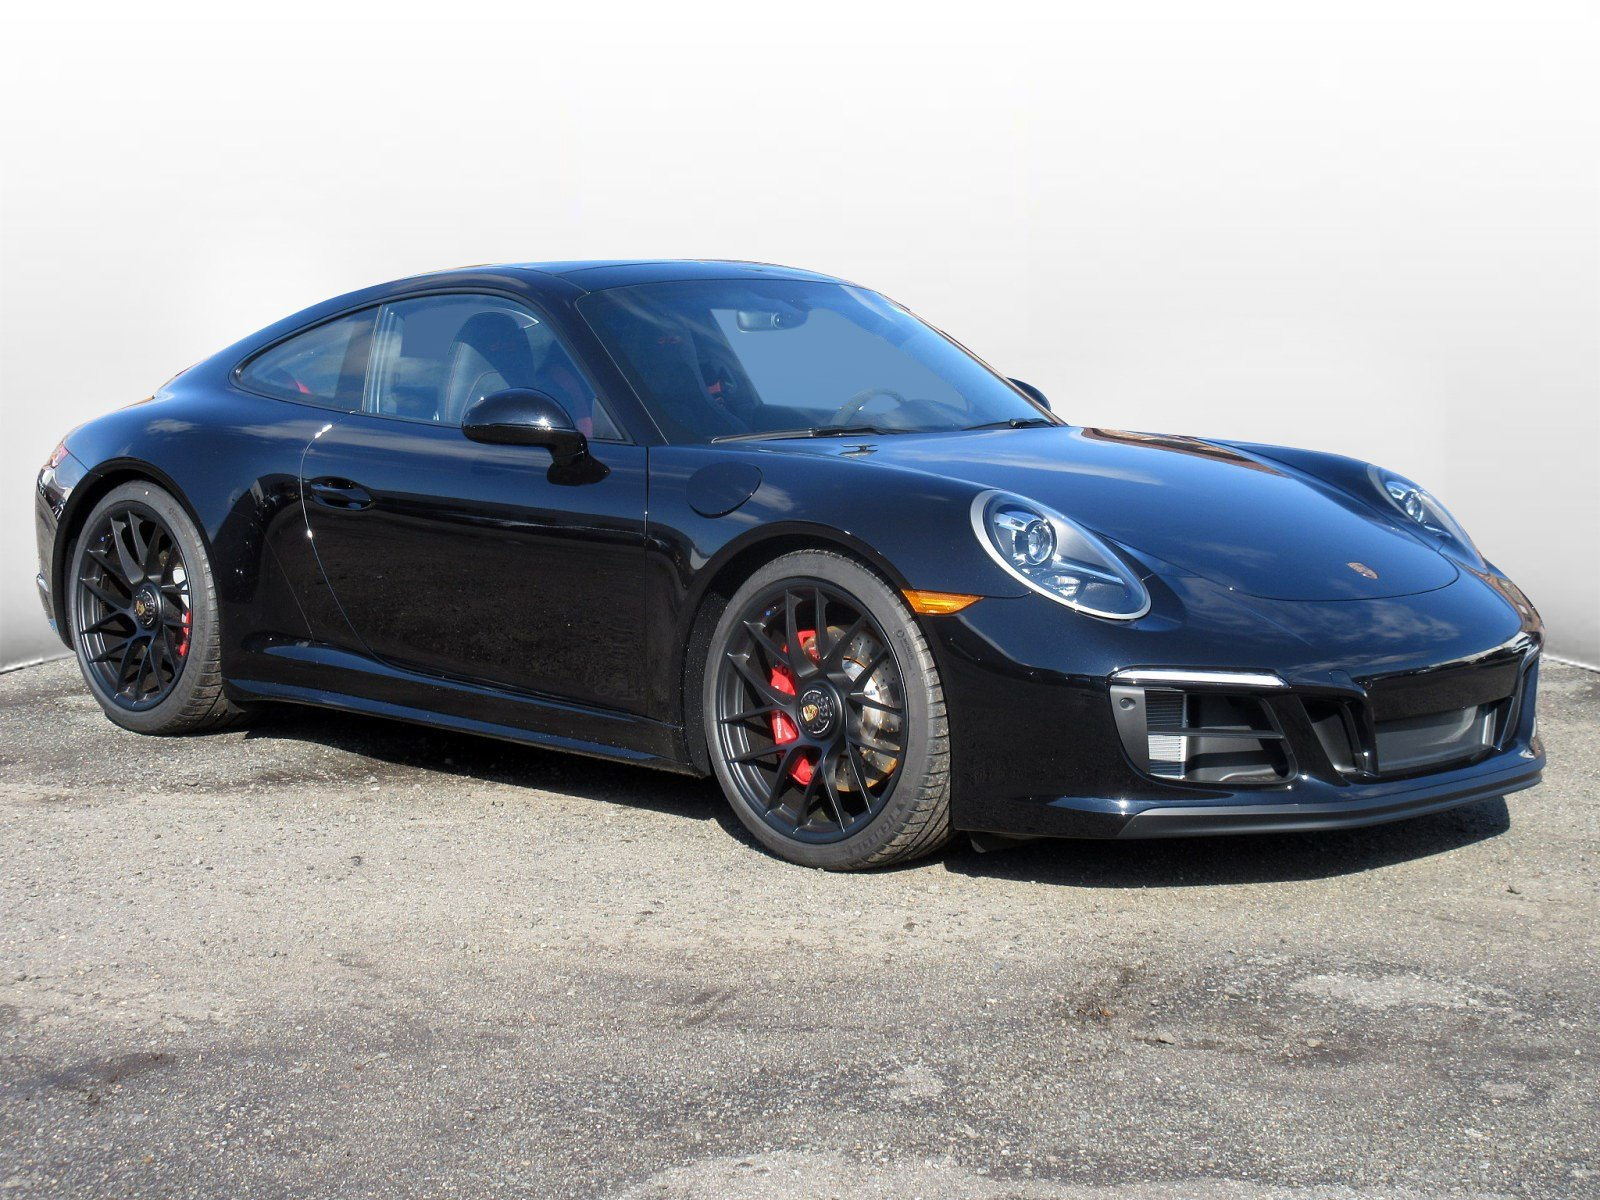 new 2019 porsche 911 carrera gts 2d coupe in englewood #pp219090